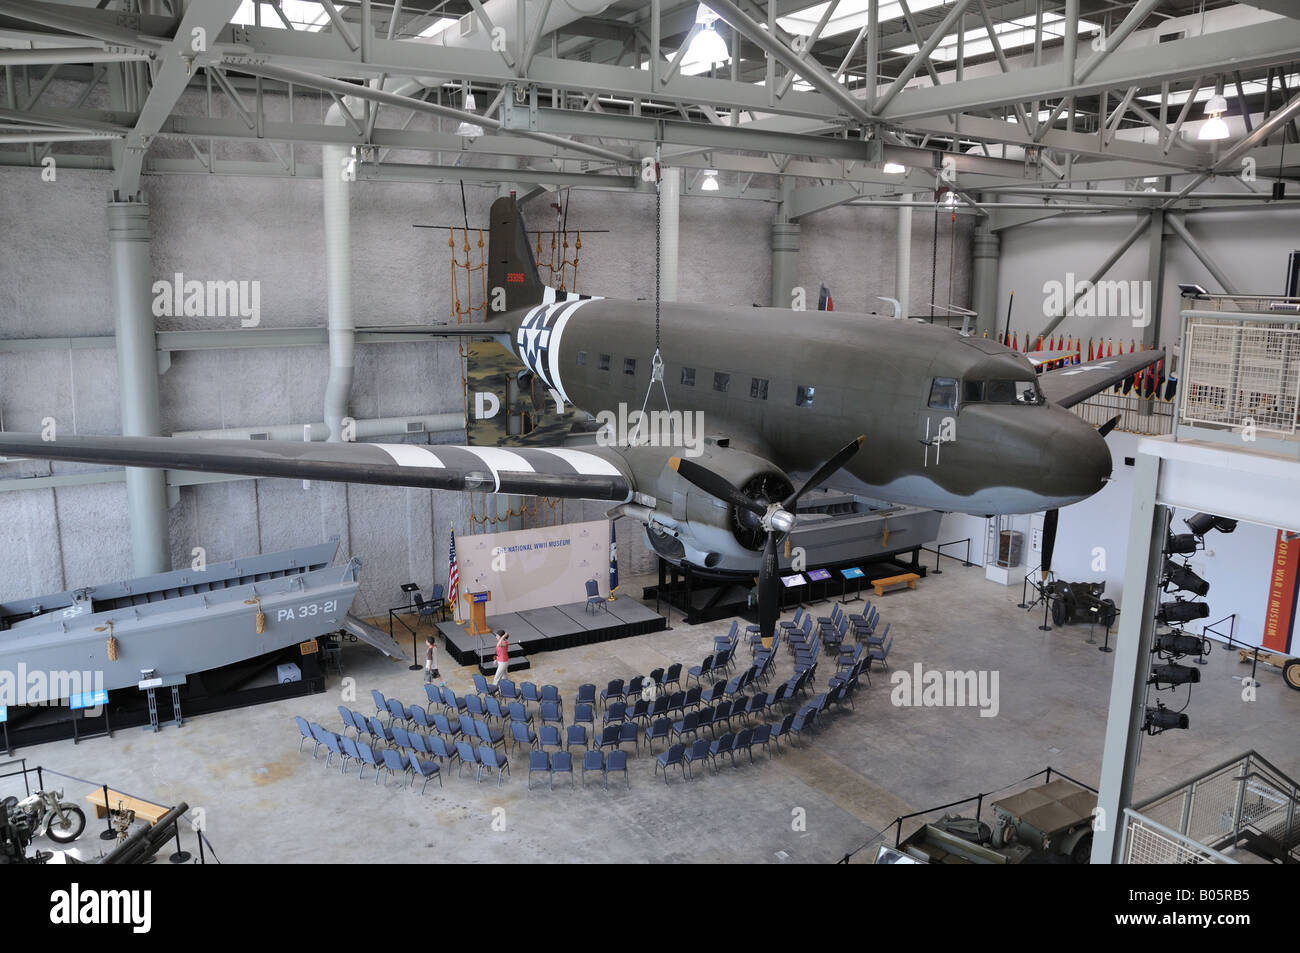 A C47 airplane hangs in the entrance hall of the National World War II museum in New Orleans. - Stock Image